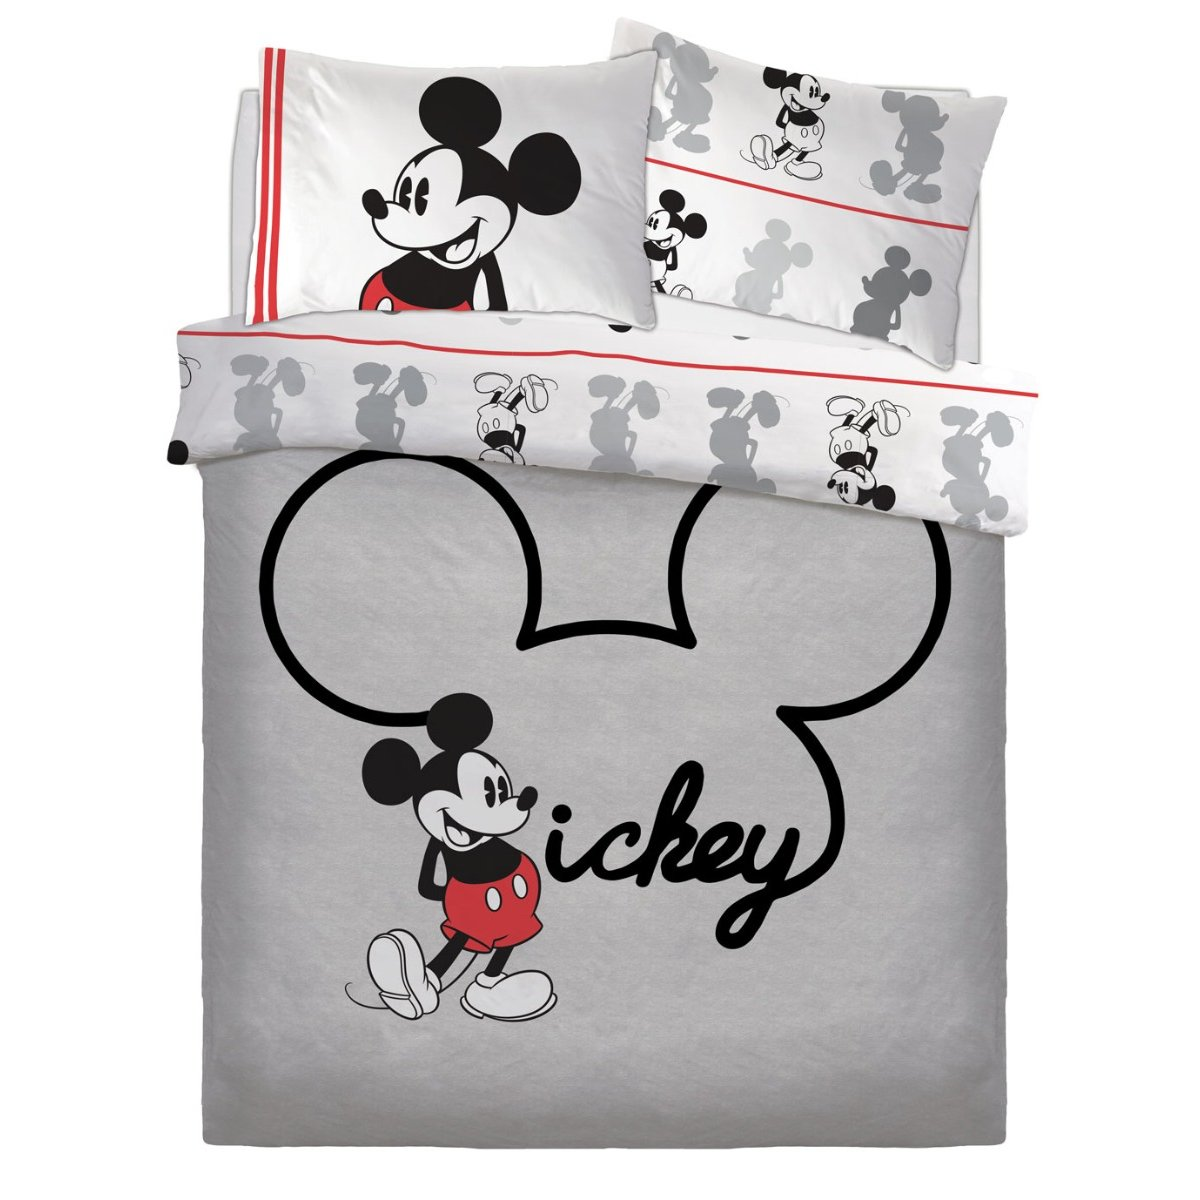 Mickey Jersey Bedding - Reversible Duvet Cover and Pillowcase Set